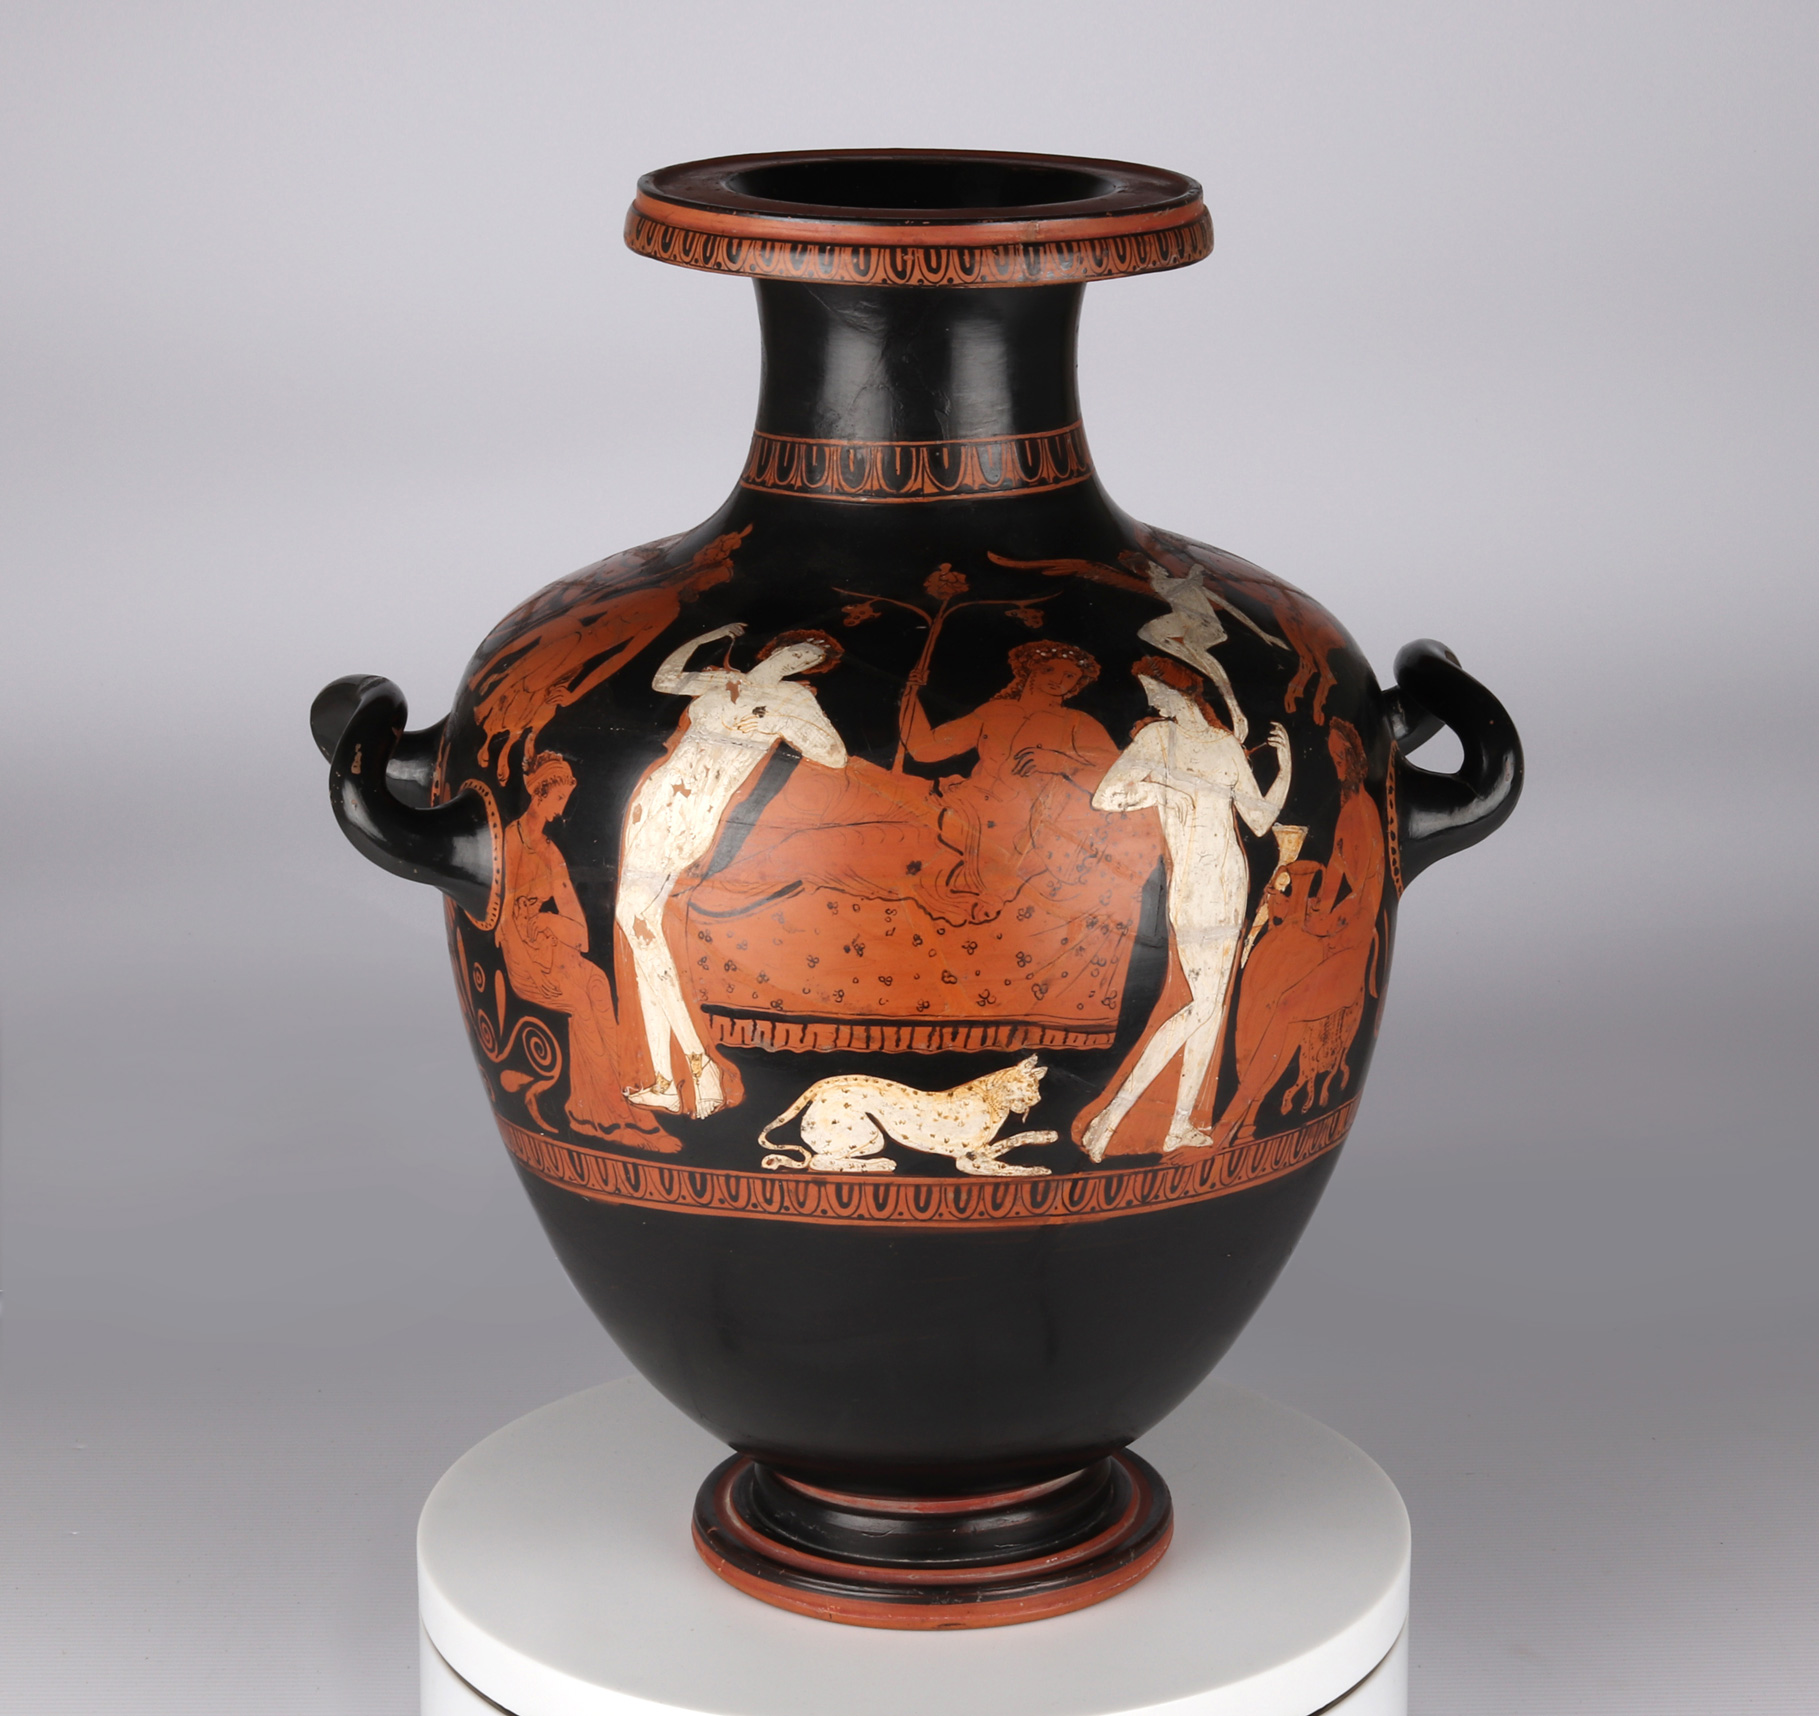 The Red-figured Hydria